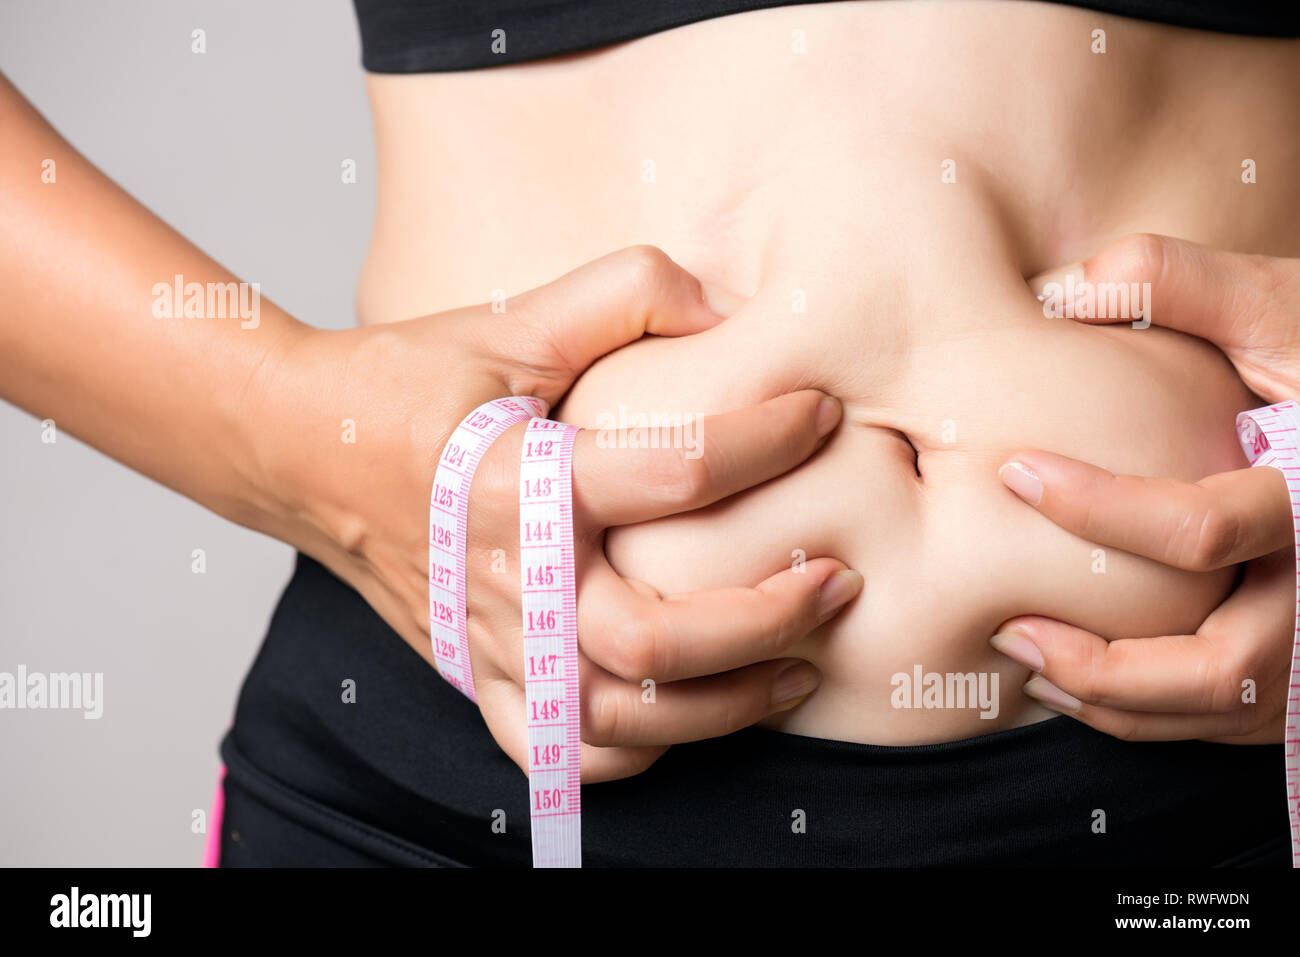 Fat woman hand holding excessive belly fat with measuring tape. Healthcare and woman diet lifestyle concept to reduce belly and shape up healthy stoma - Stock Image